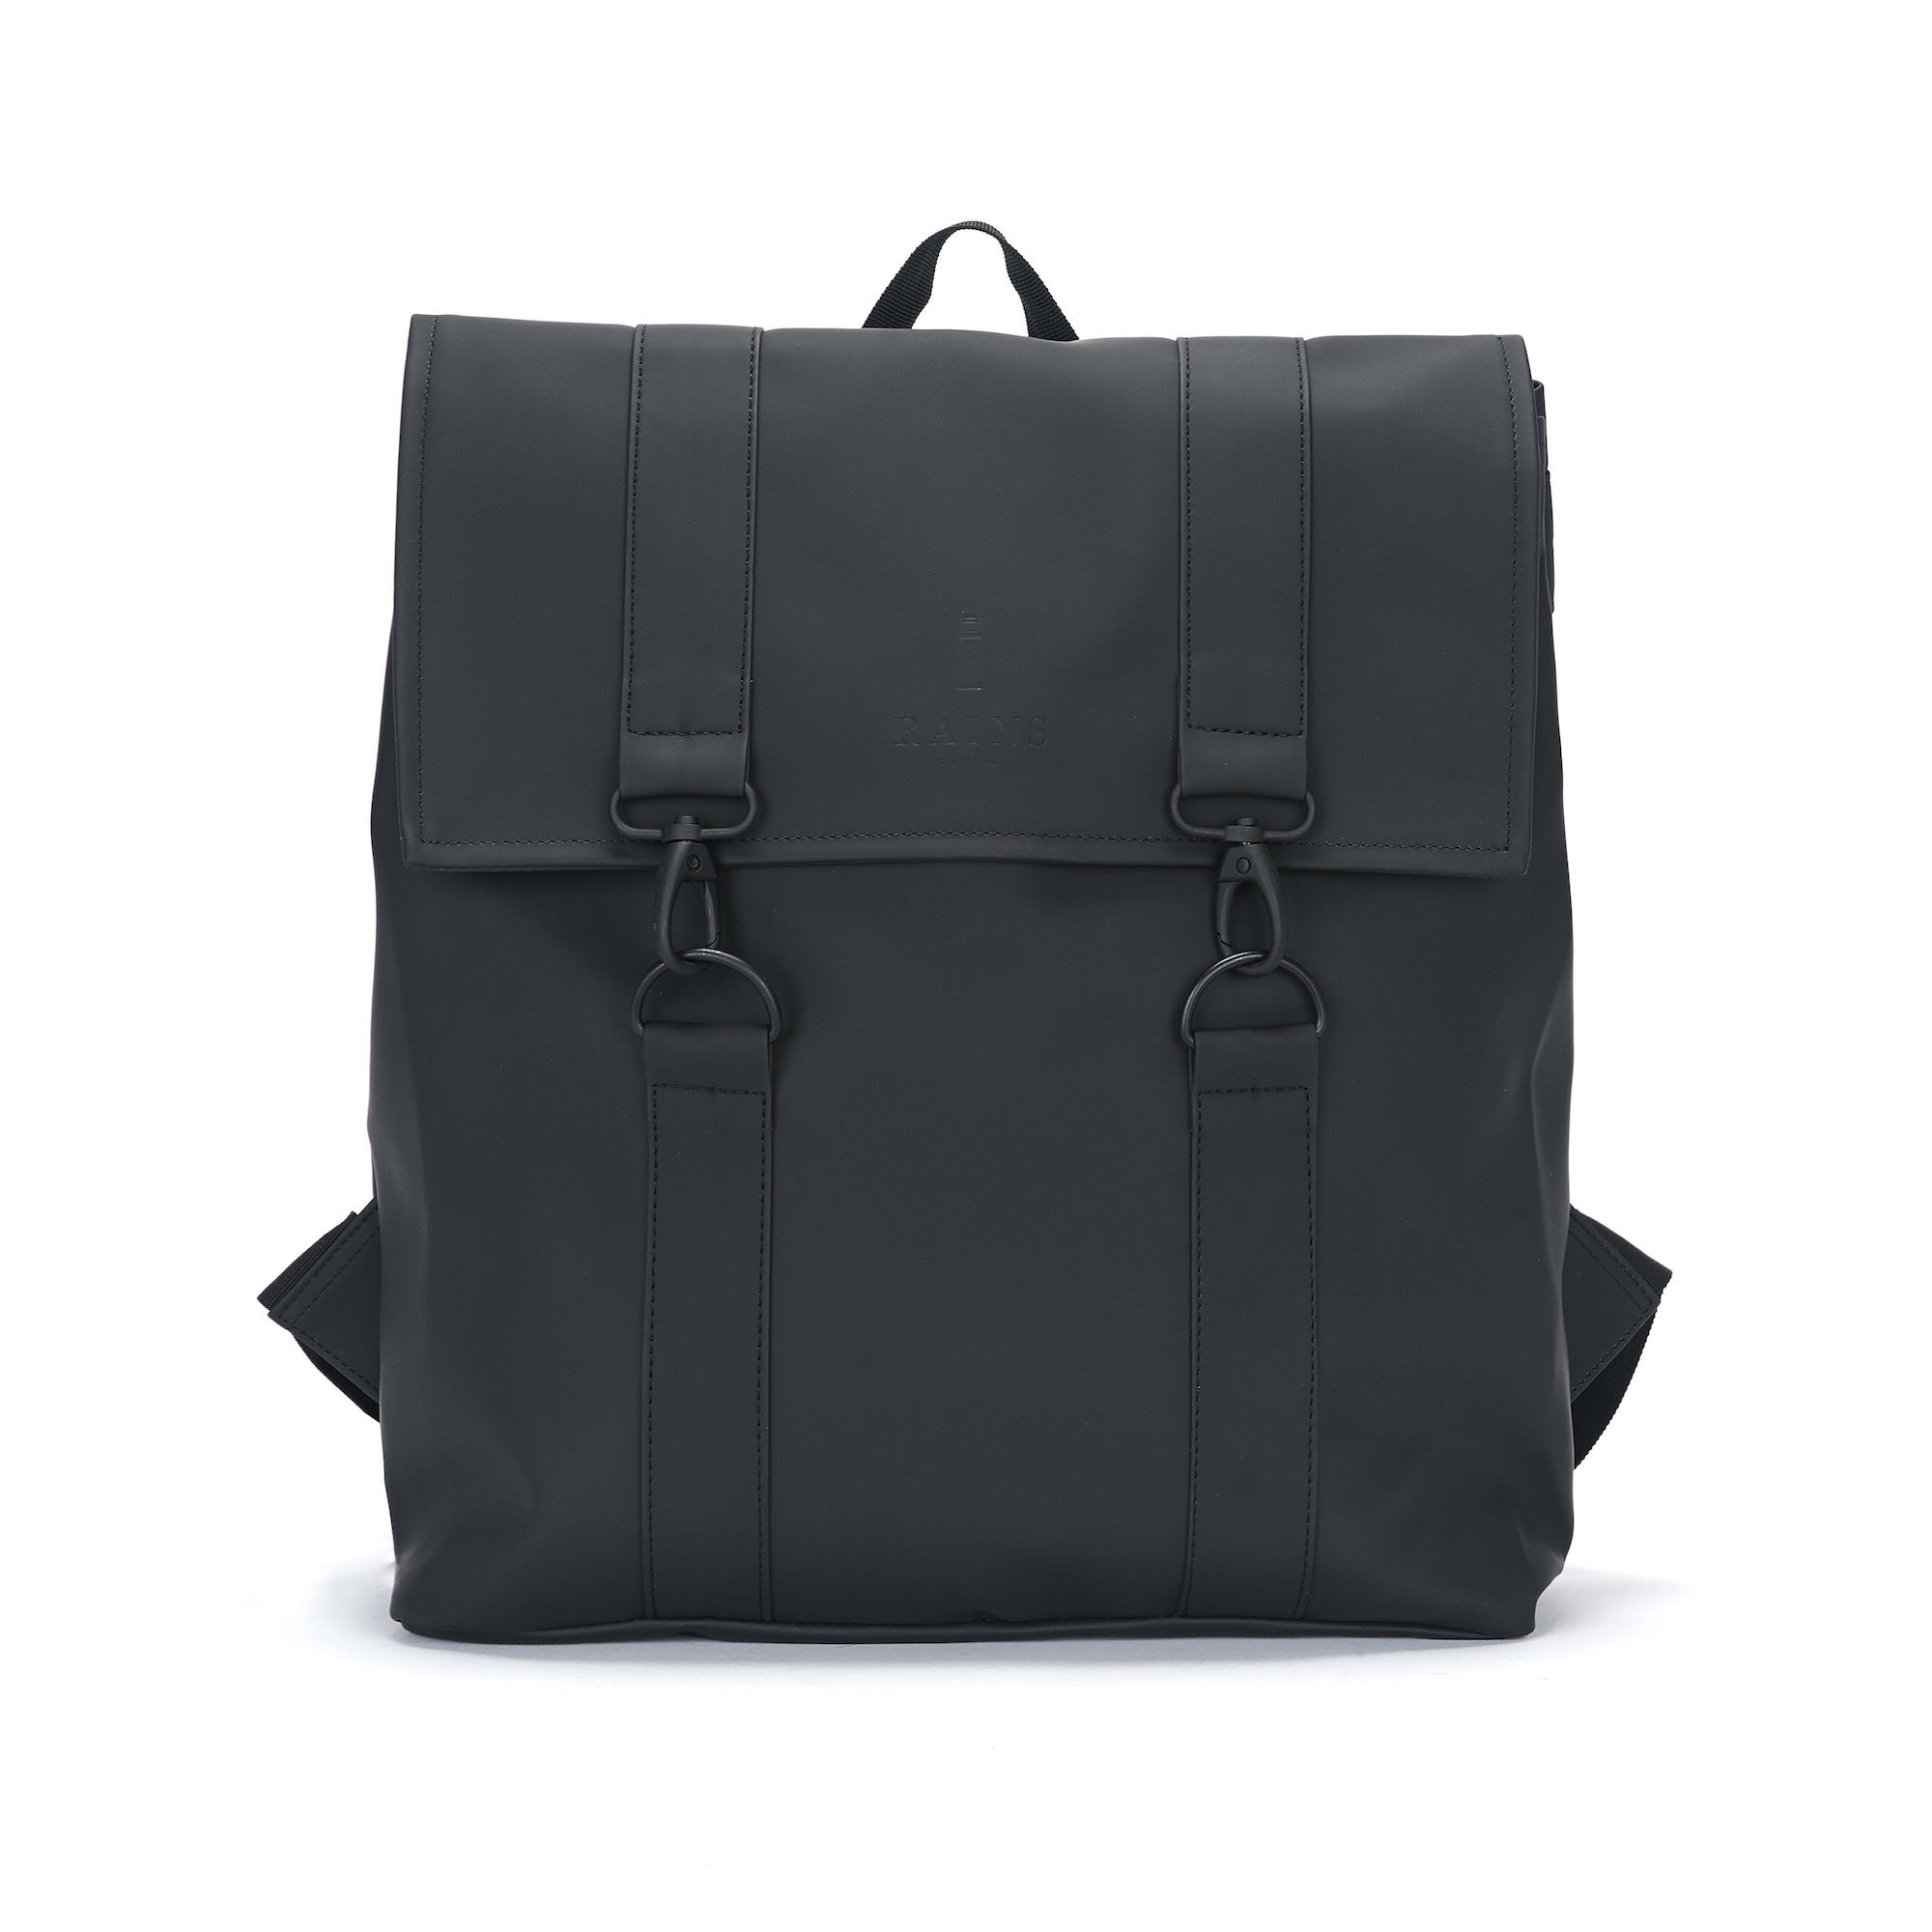 サムネイル:Msn Bag Black / RAINS